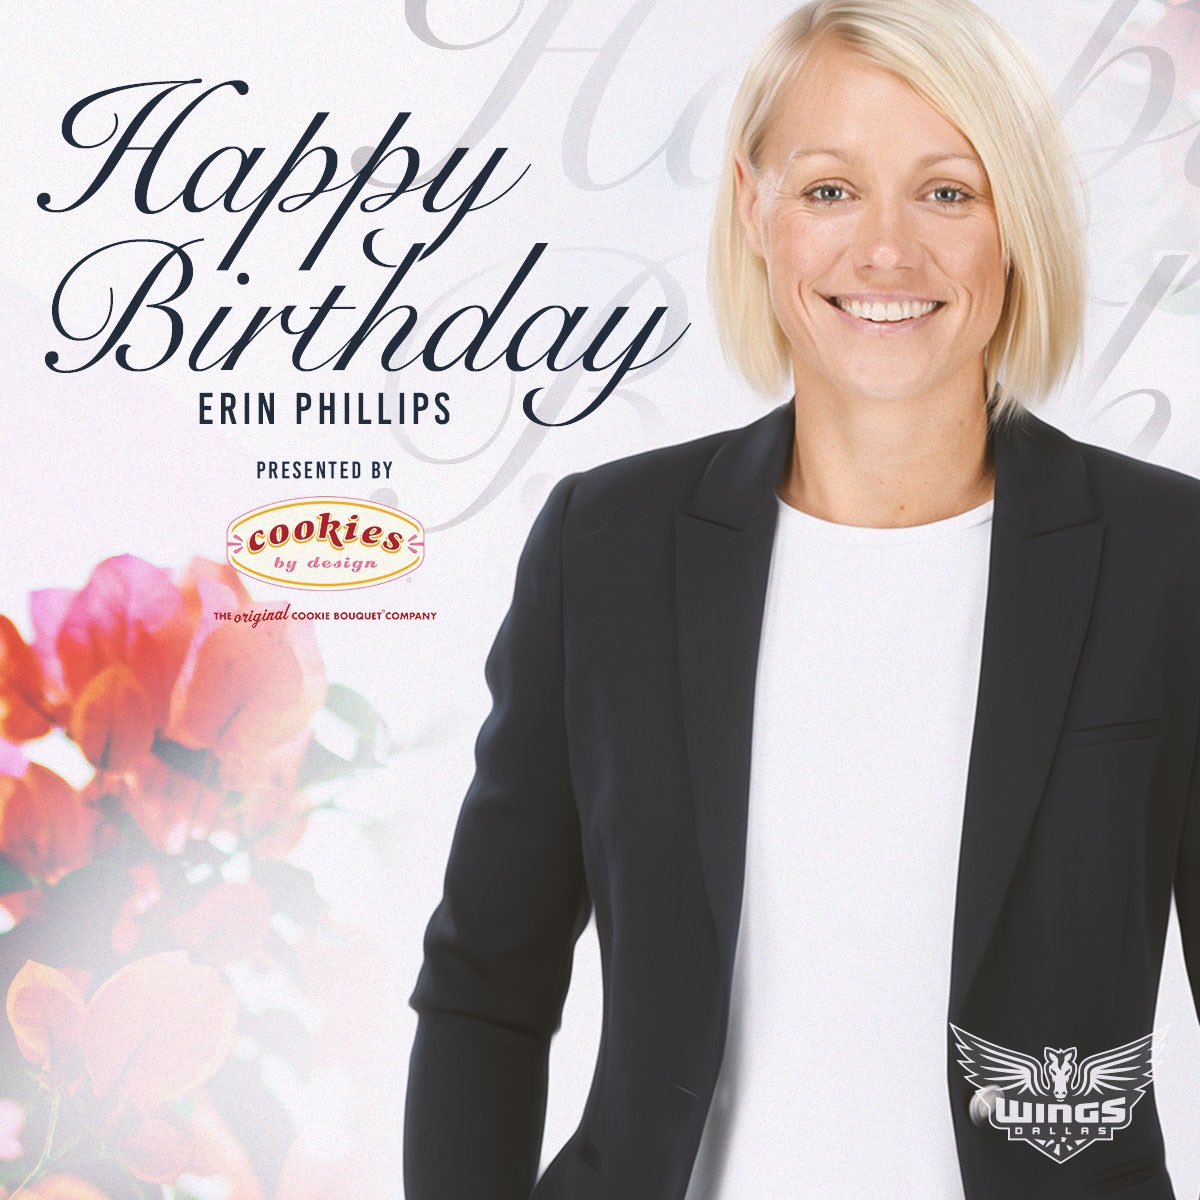 And a BIG happy birthday to our head Aussie - former player and current coach @erinphillips131! 🎉